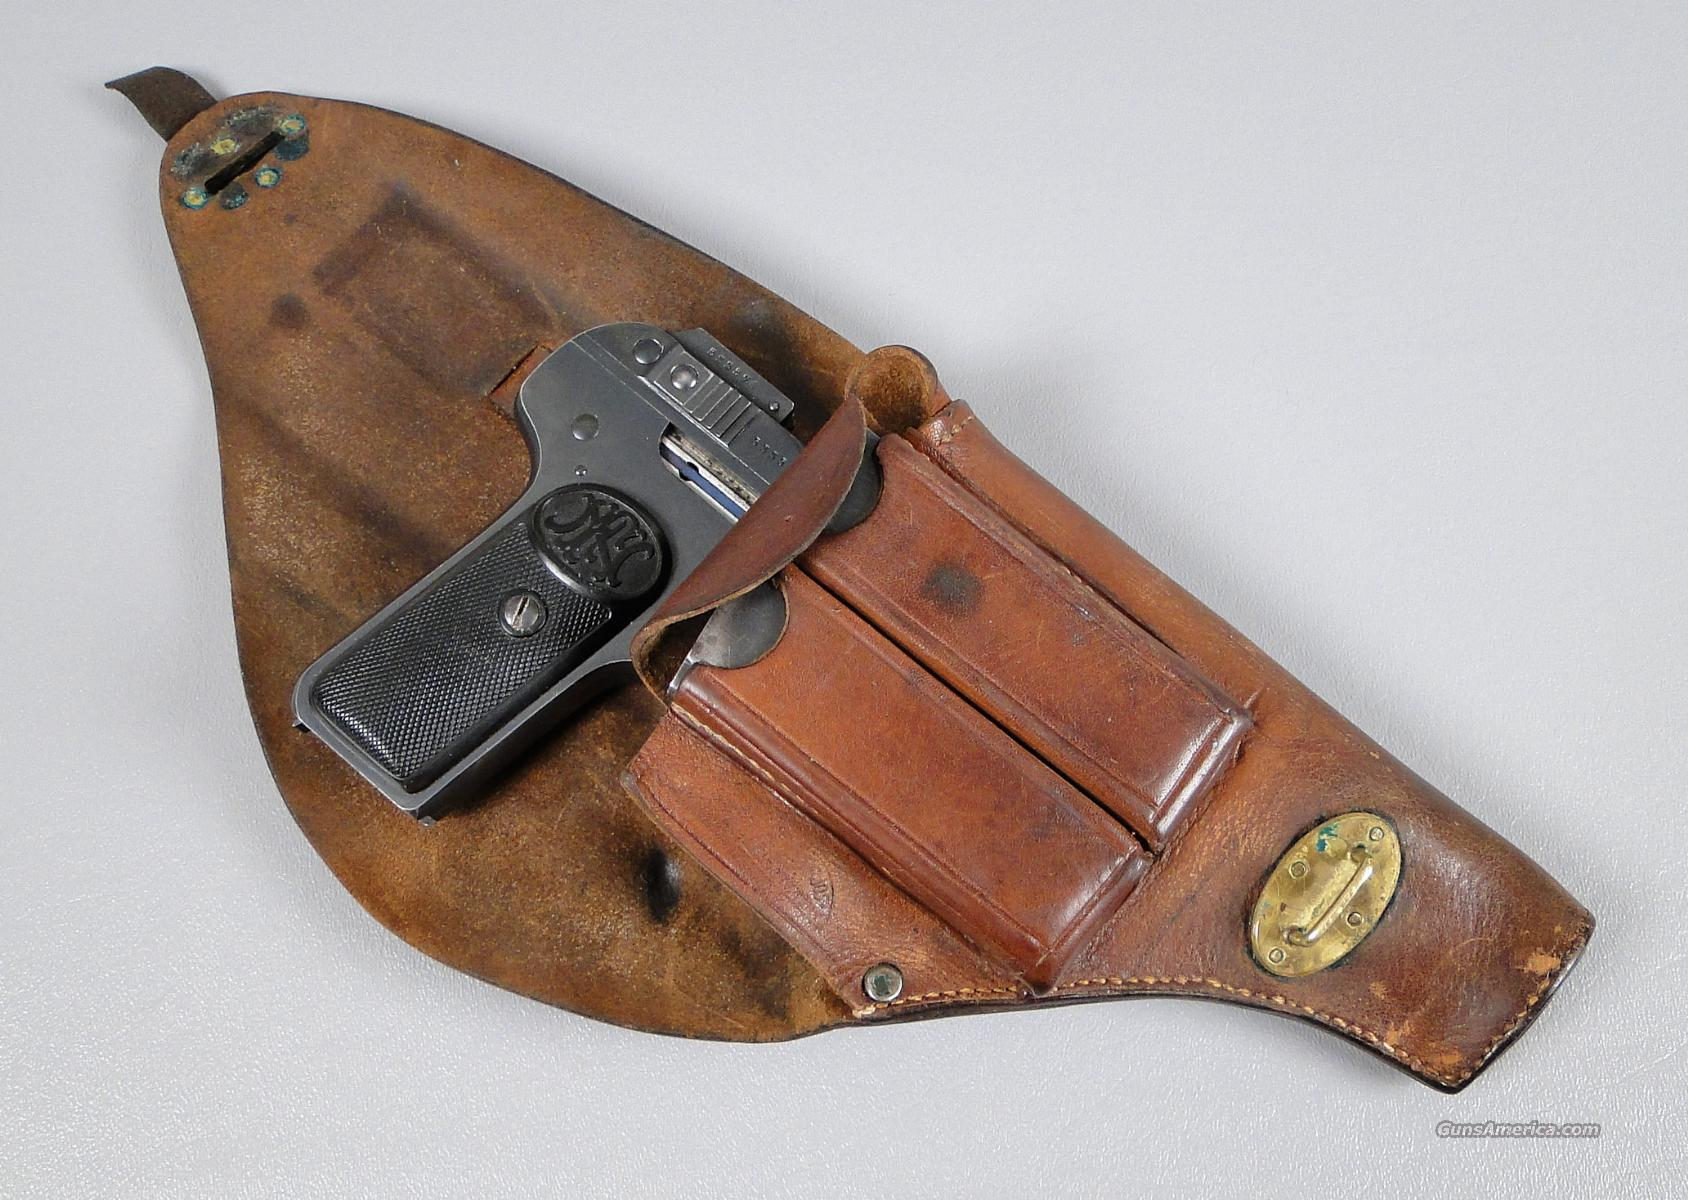 Fn browning model 1900 32 acp pistol with extra magazine and military